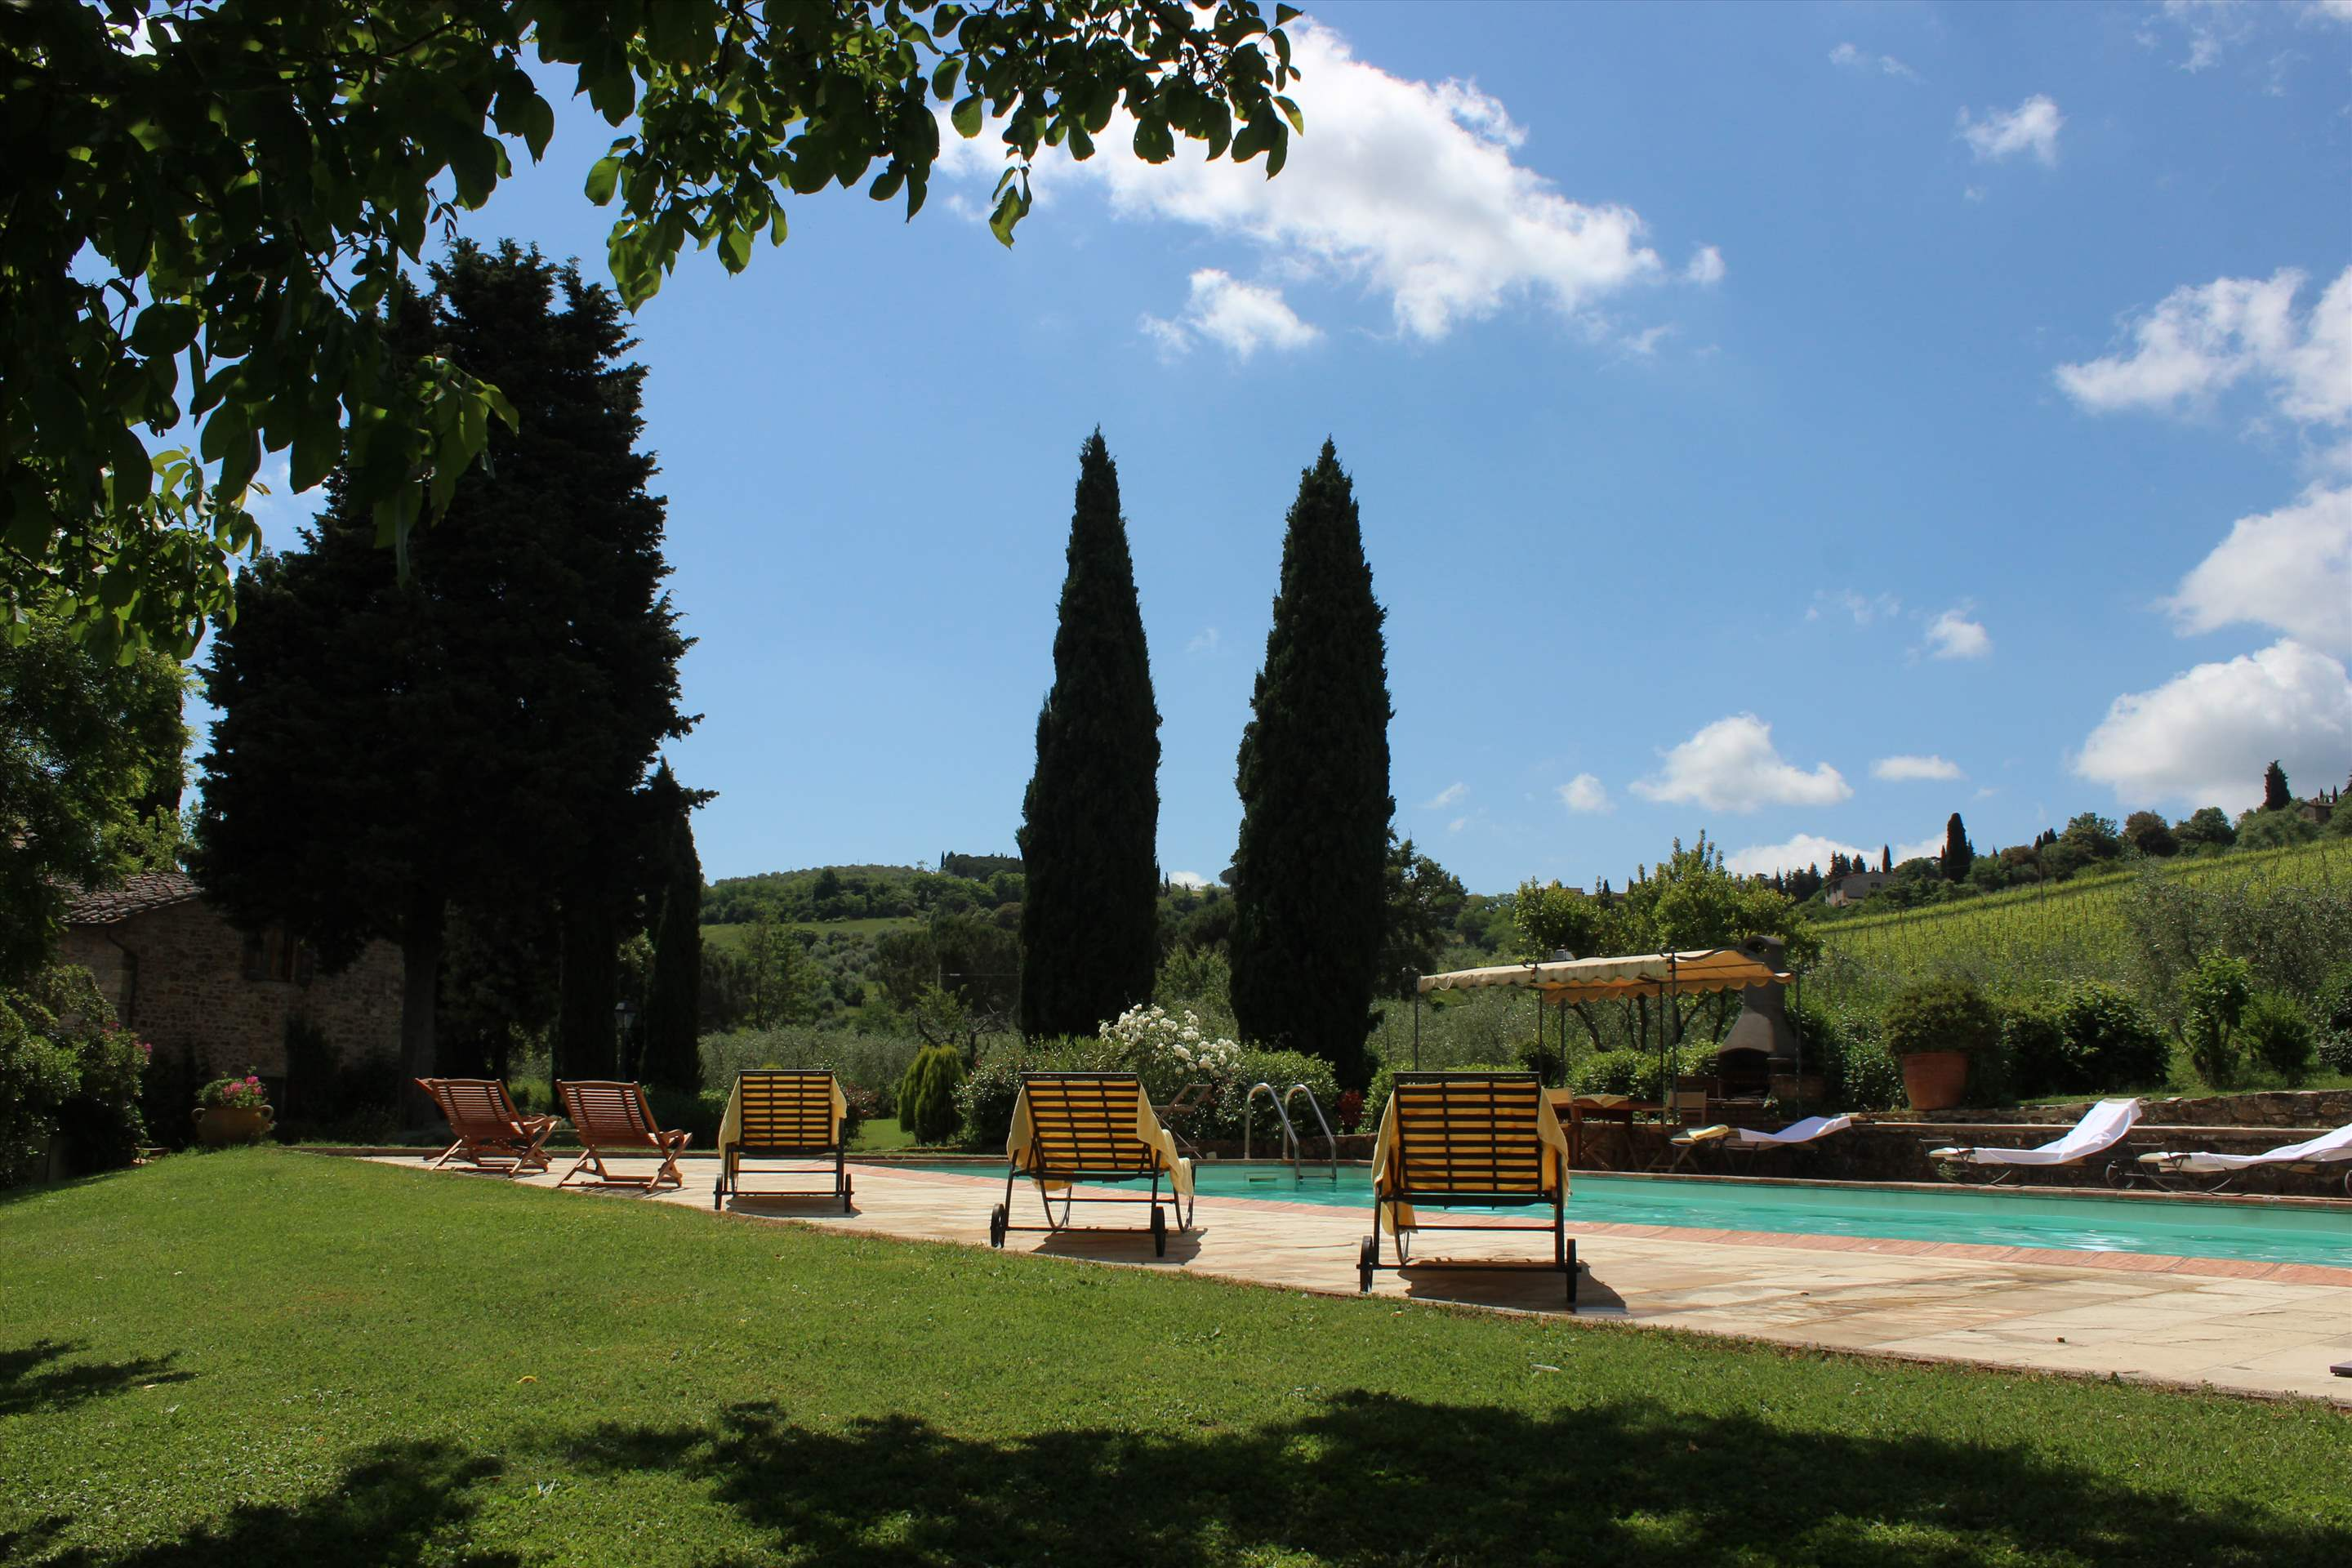 Villa Campana, 5 bedroom villa in Chianti & Countryside, Tuscany